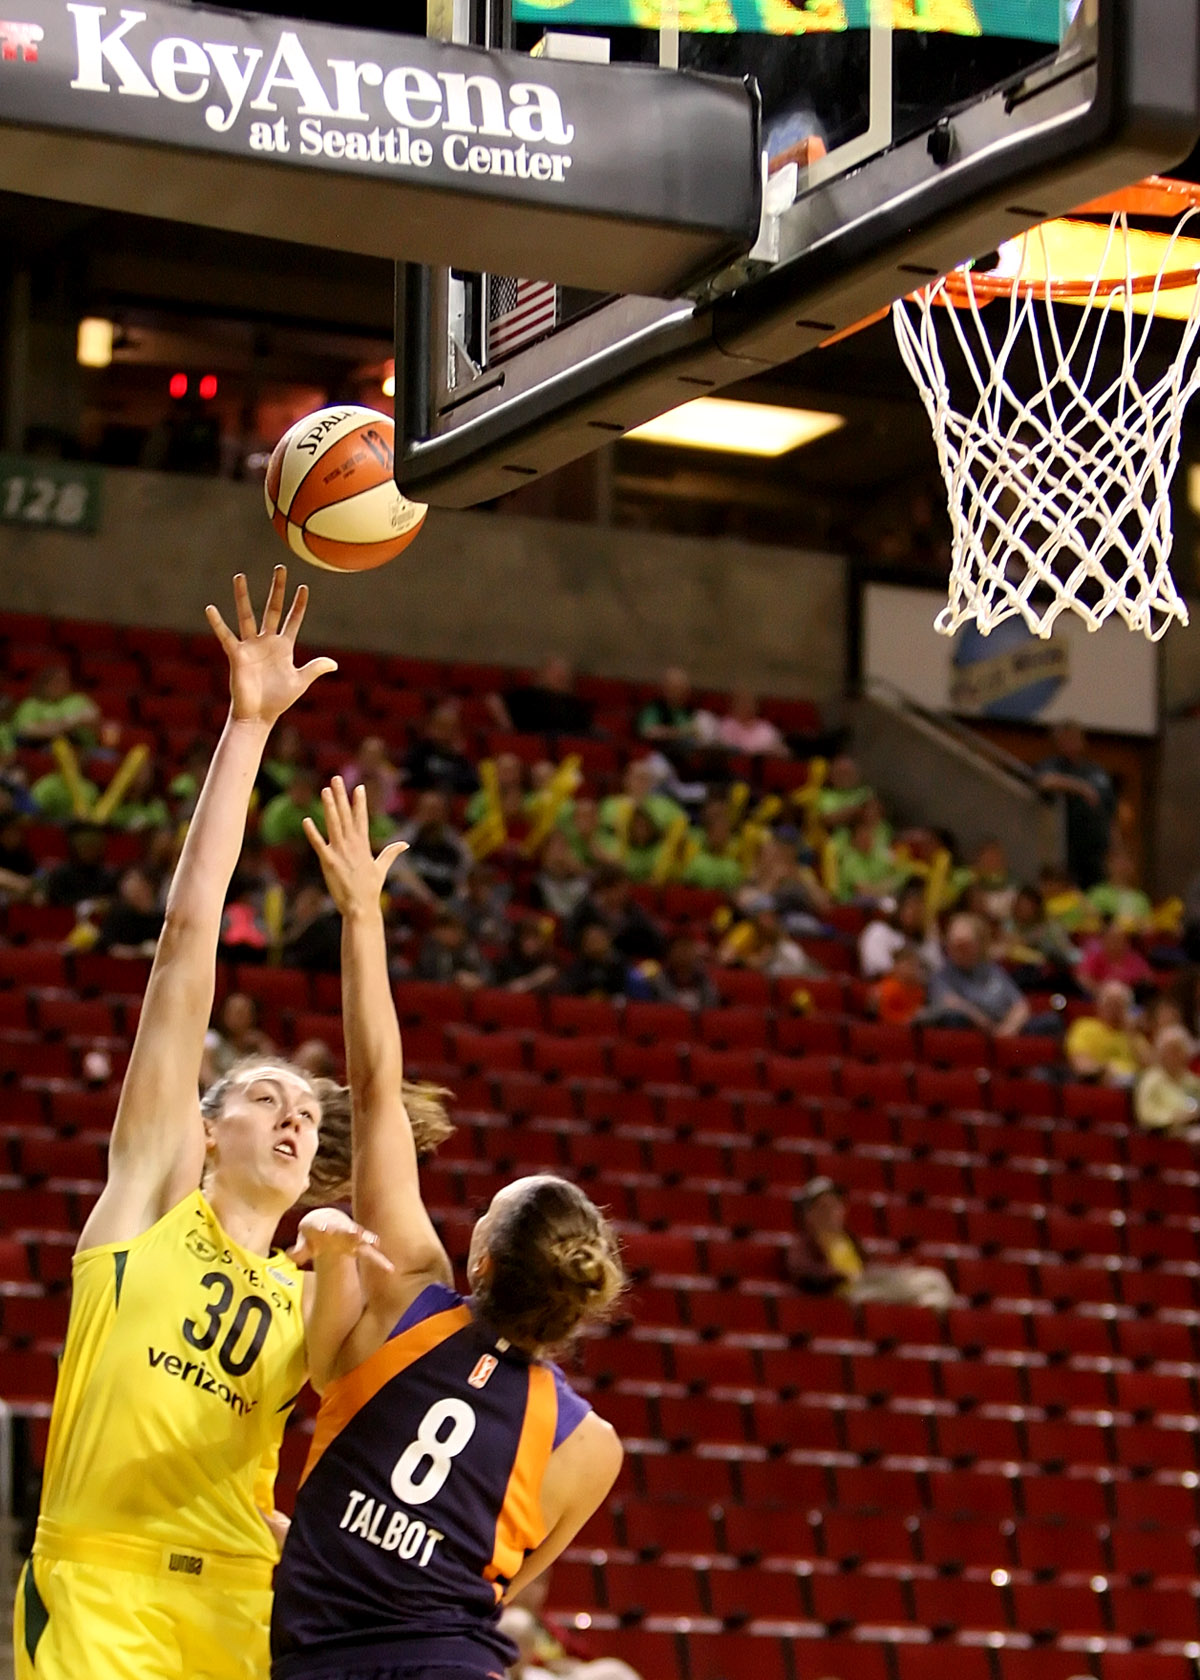 Breanna Stewart of the Storm puts up a shot against the Mercury's Stephanie Talbot.